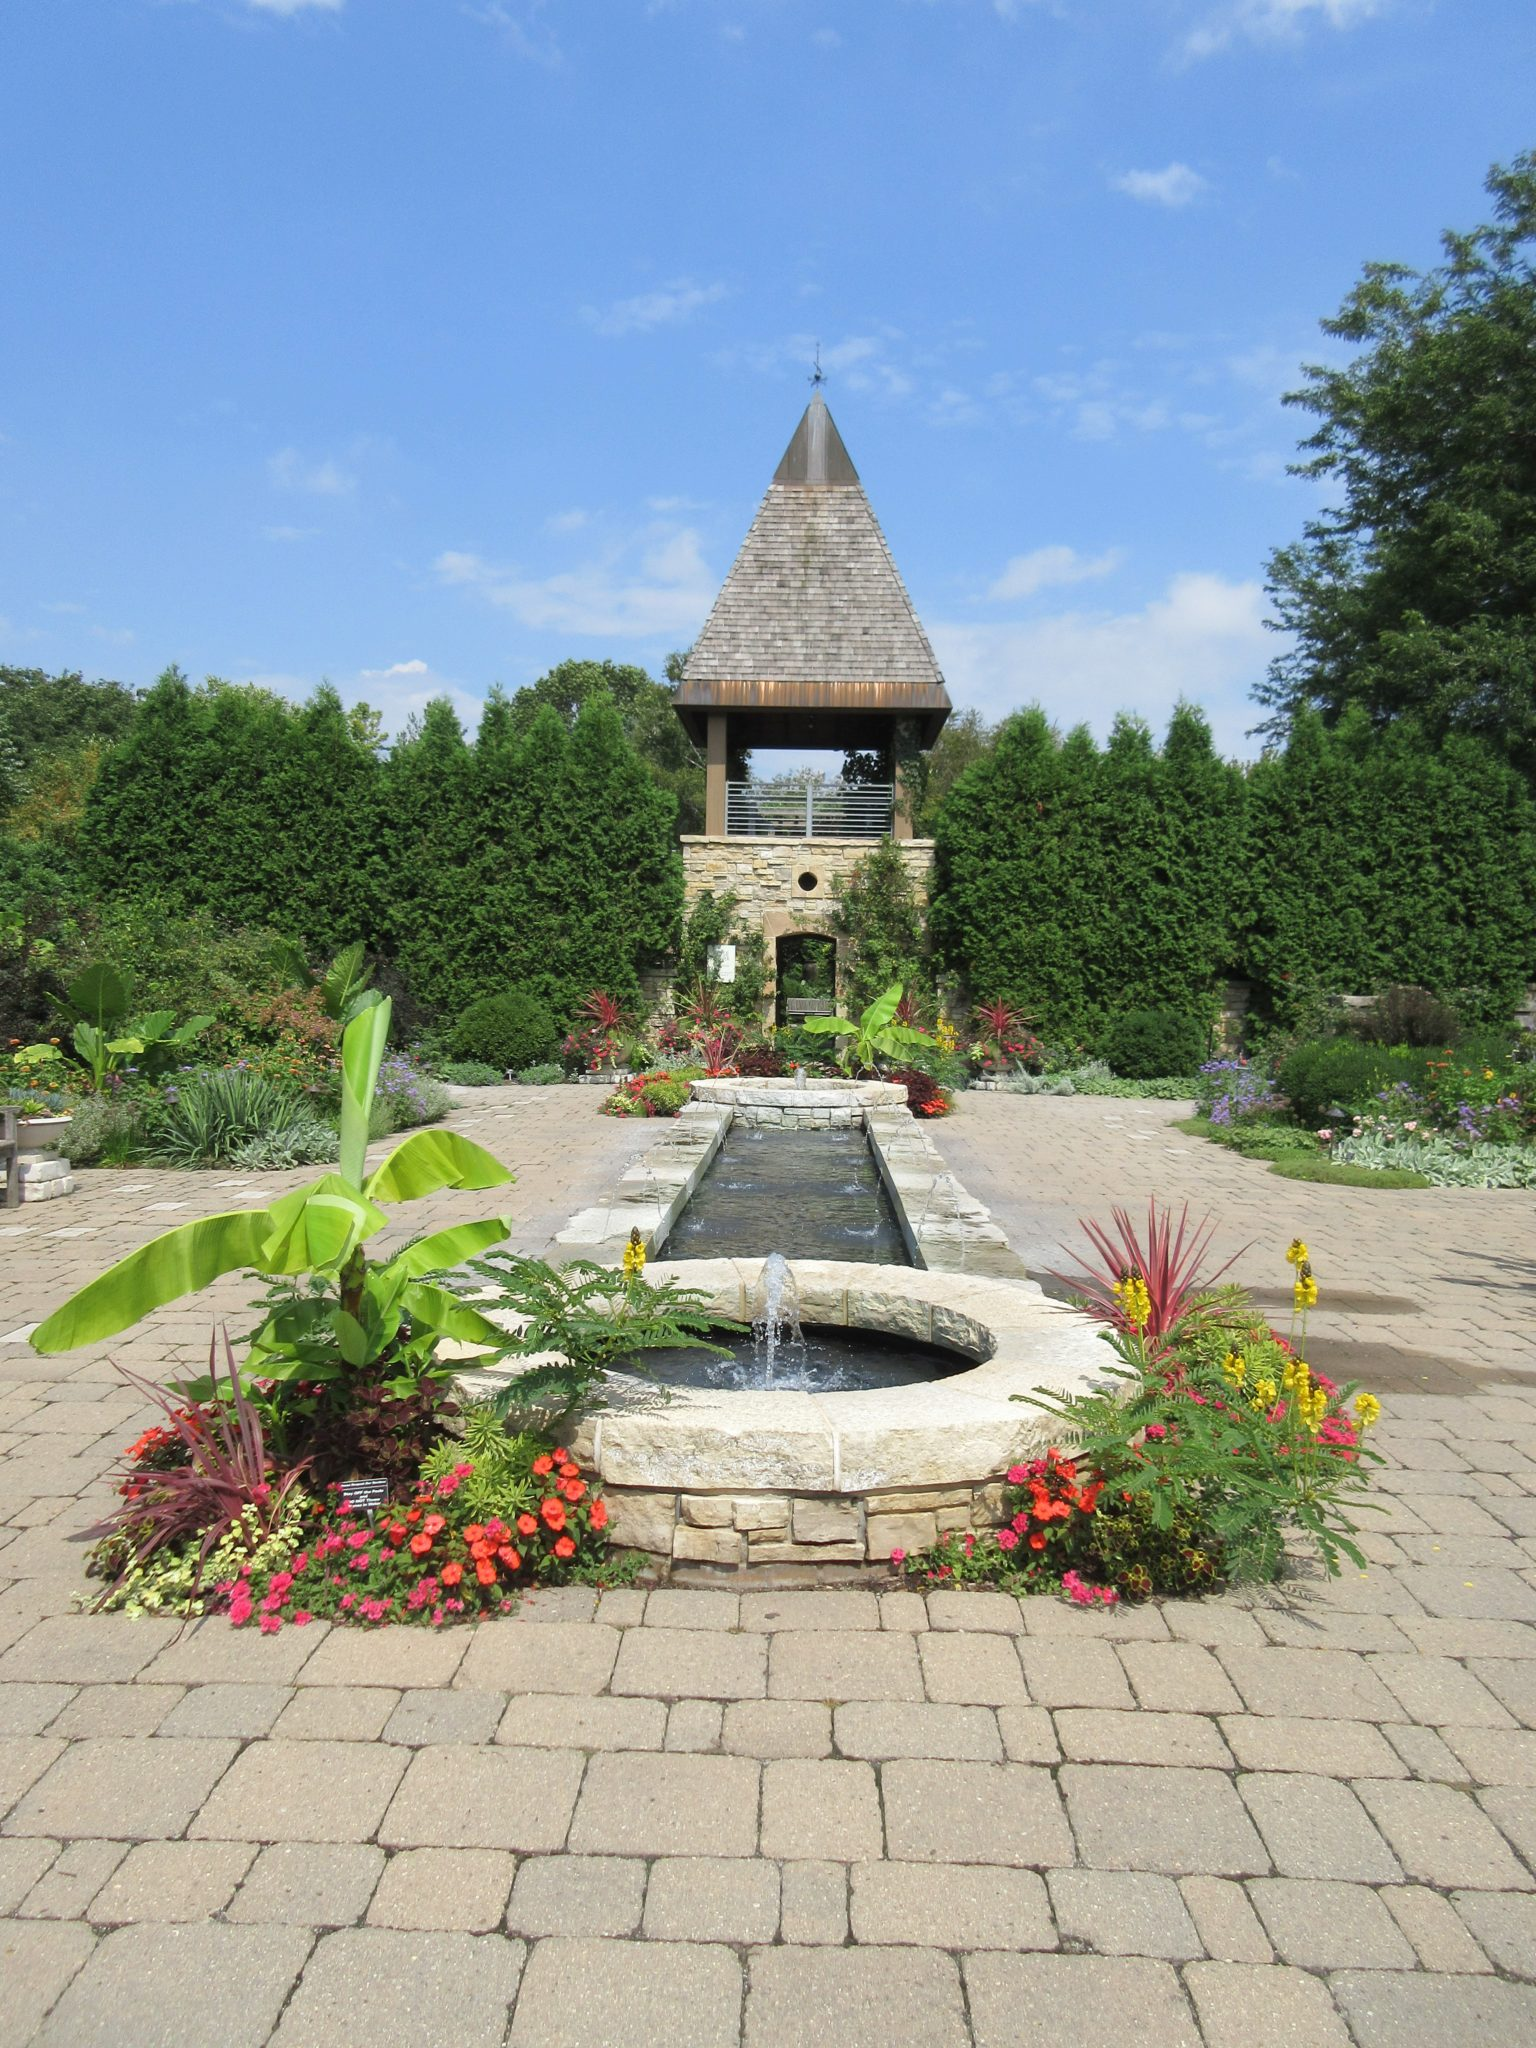 Olbrich in august rotary botanical gardens for Olbrich botanical gardens hours